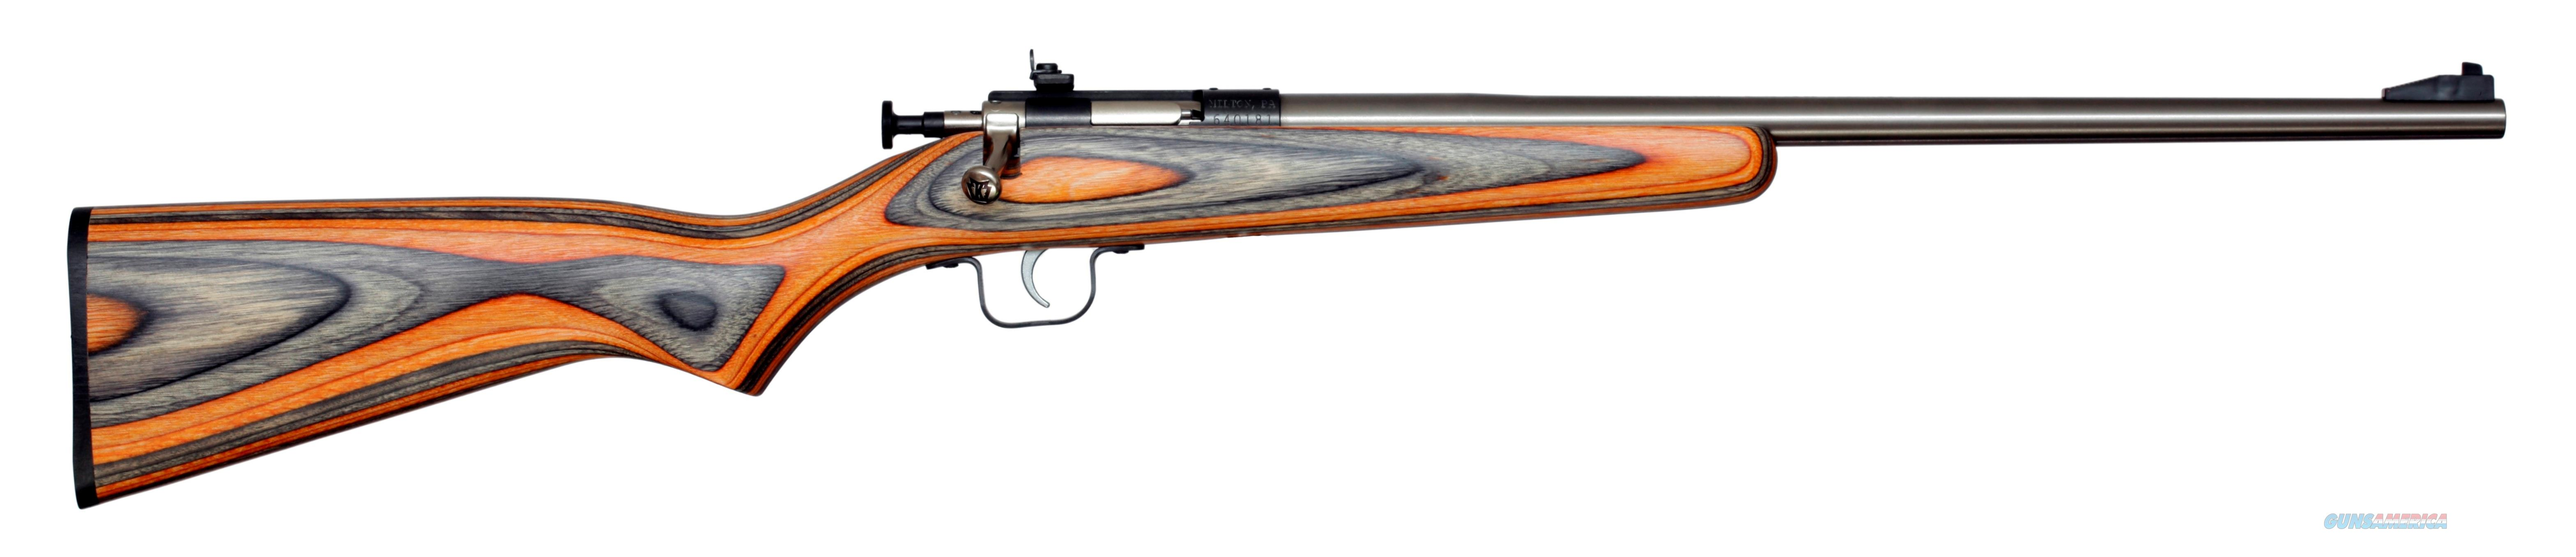 Keystone Sporting Arms CRICKETT 22LR SS/BLK-ORNGE LAM BLUE RECEIVER W/STAINLESS BBL  Guns > Rifles > K Misc Rifles